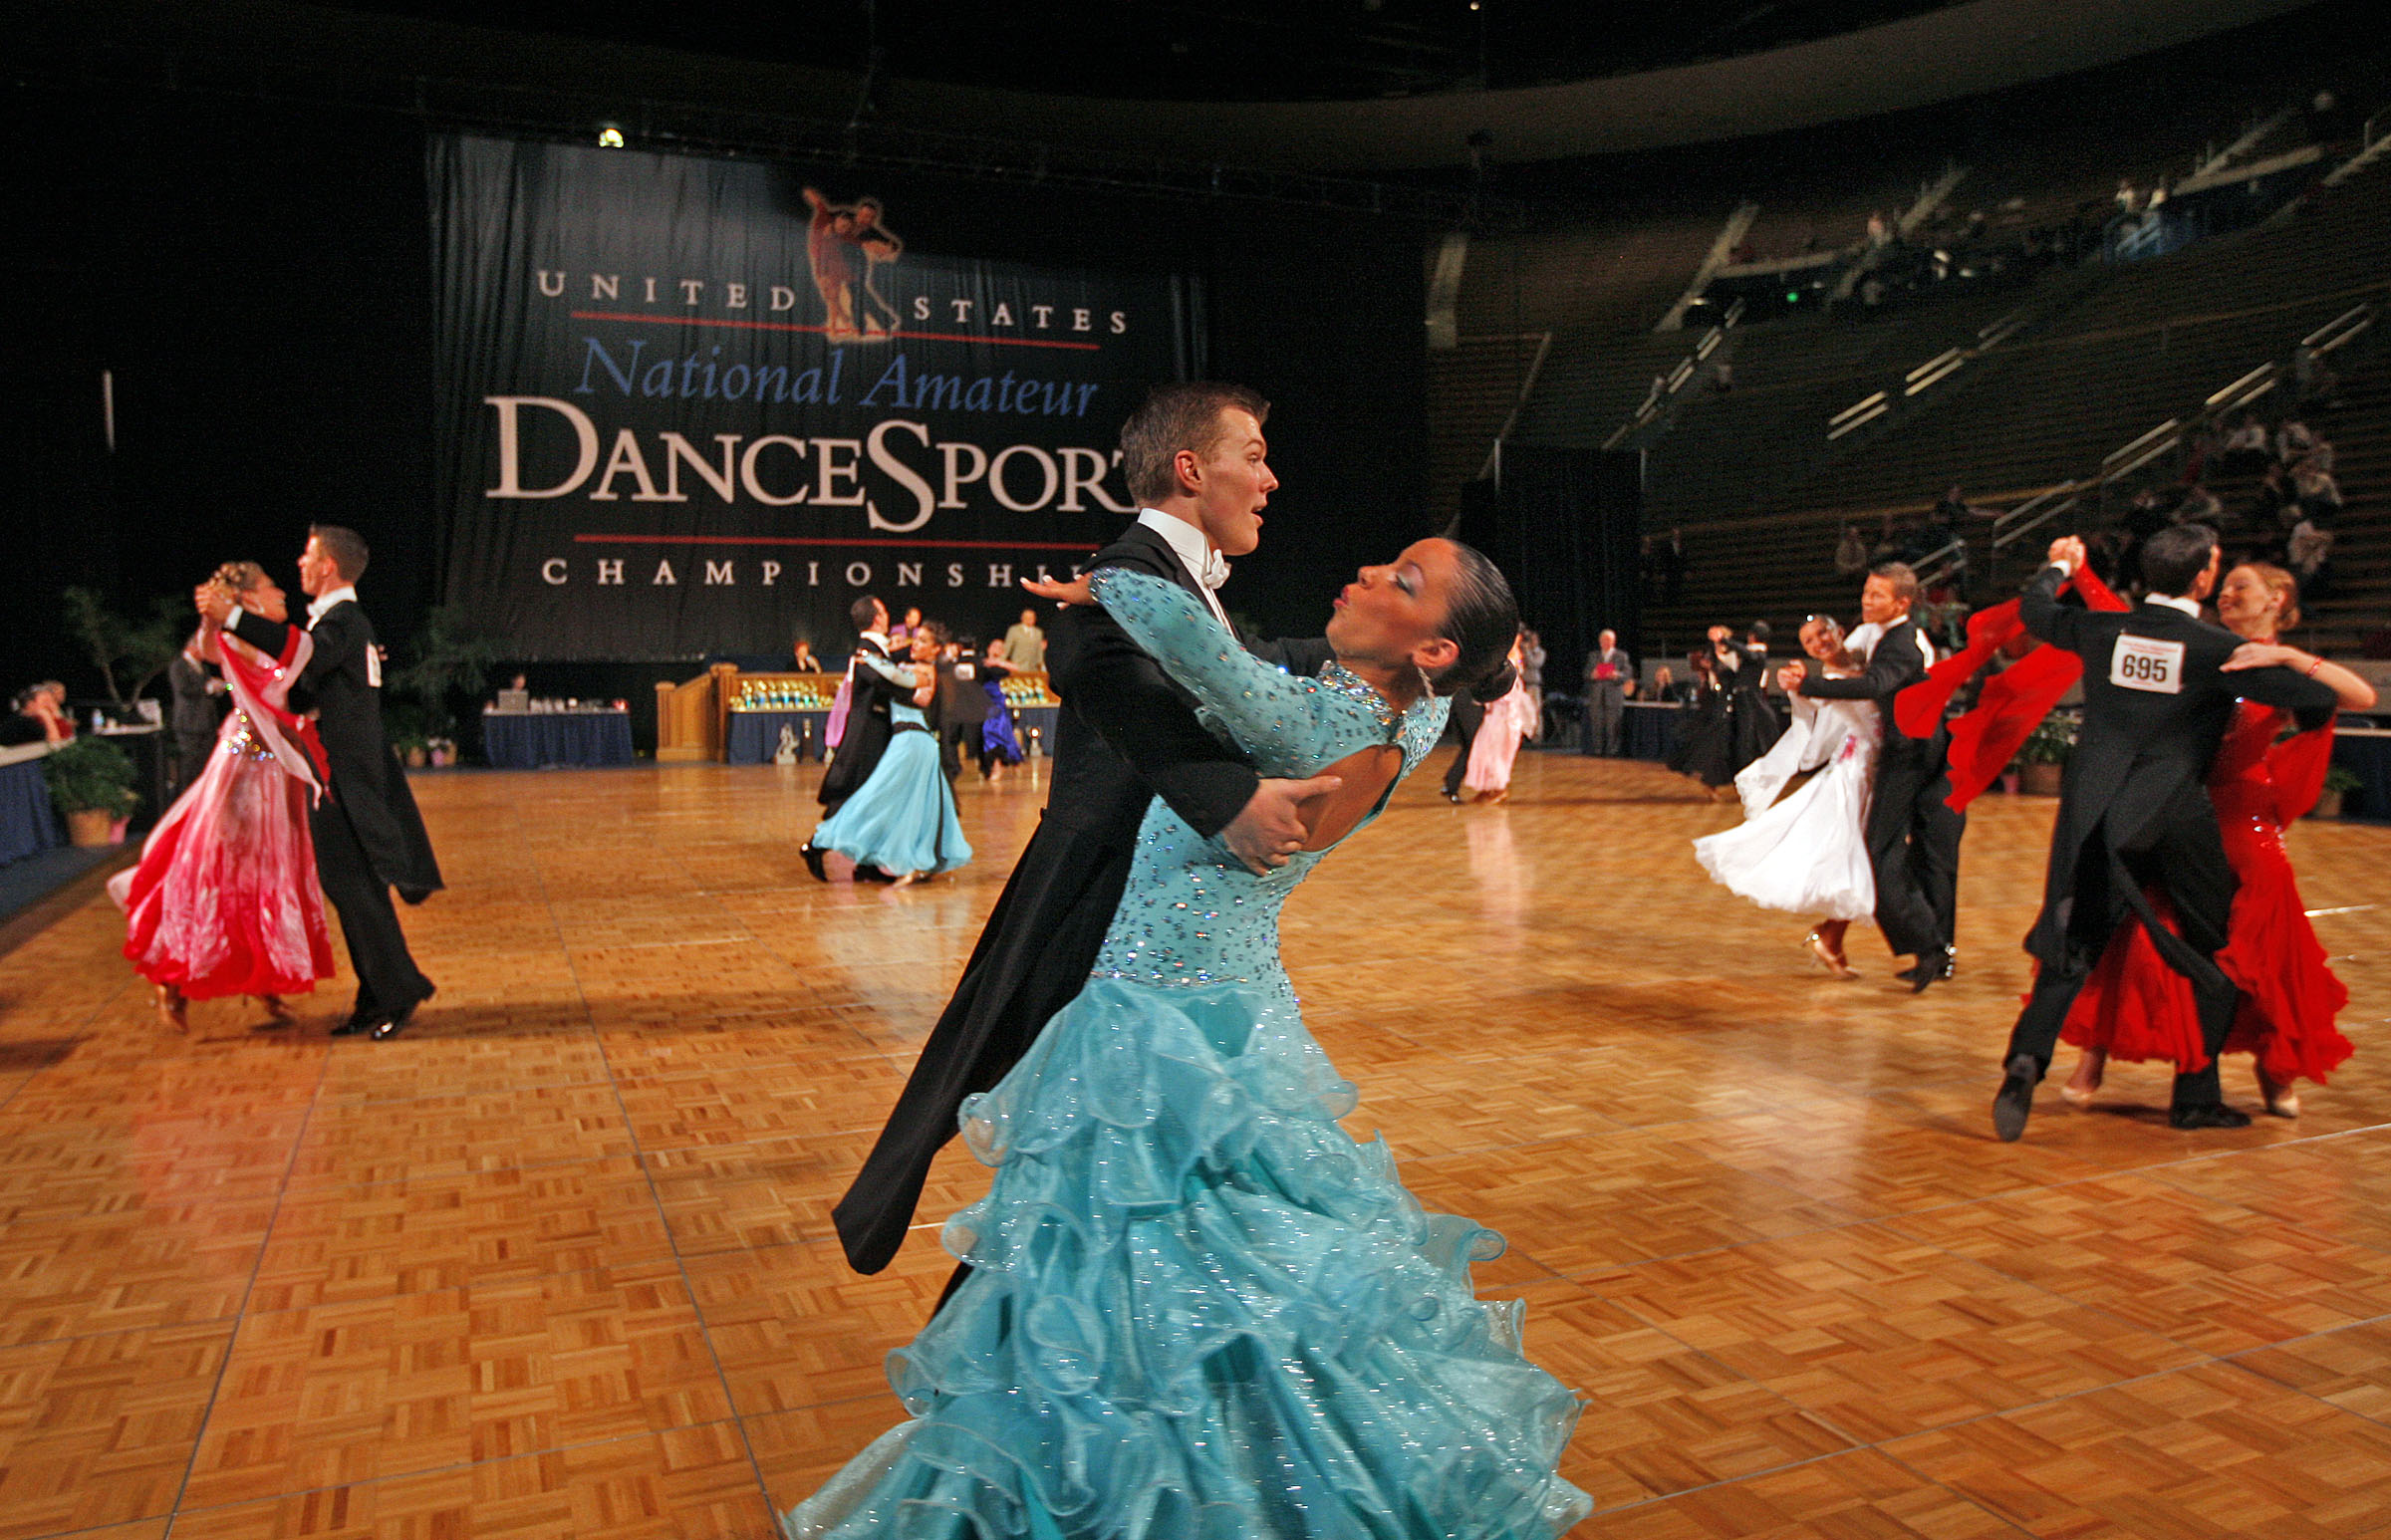 Couples dance in the preliminary rounds as dundreds of ballroom dancers of all ages sweep compete as BYU hosts the United States National Amateur DanceSport Championship...among the largest amateur ballroom dance events in the country, participants include dancers age kindergarten up in six categories, with titles awarded in Latin, standard, smooth, rhythm, cabaret and formationThursday, March 12, 2009, in Provo, Utah.